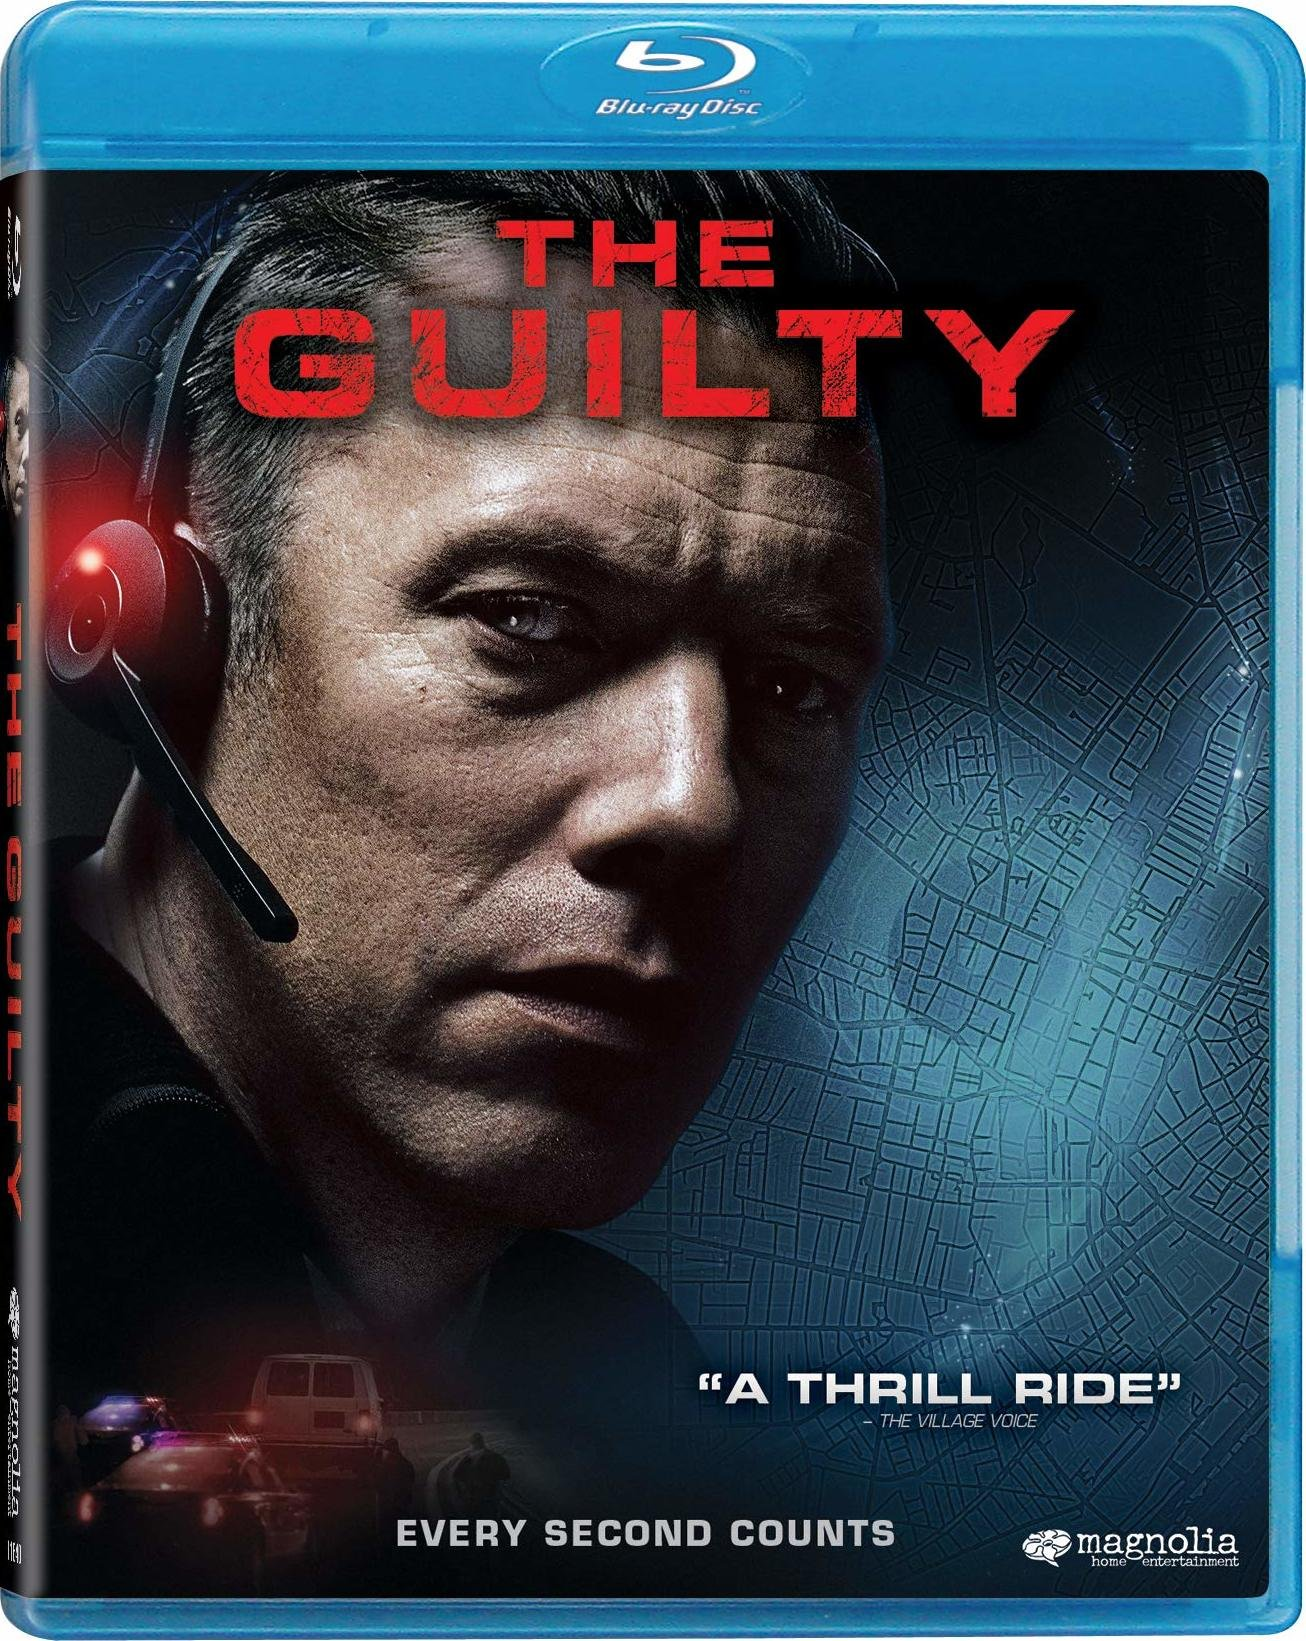 Den Skyldige aka The Guilty (2018) poster image